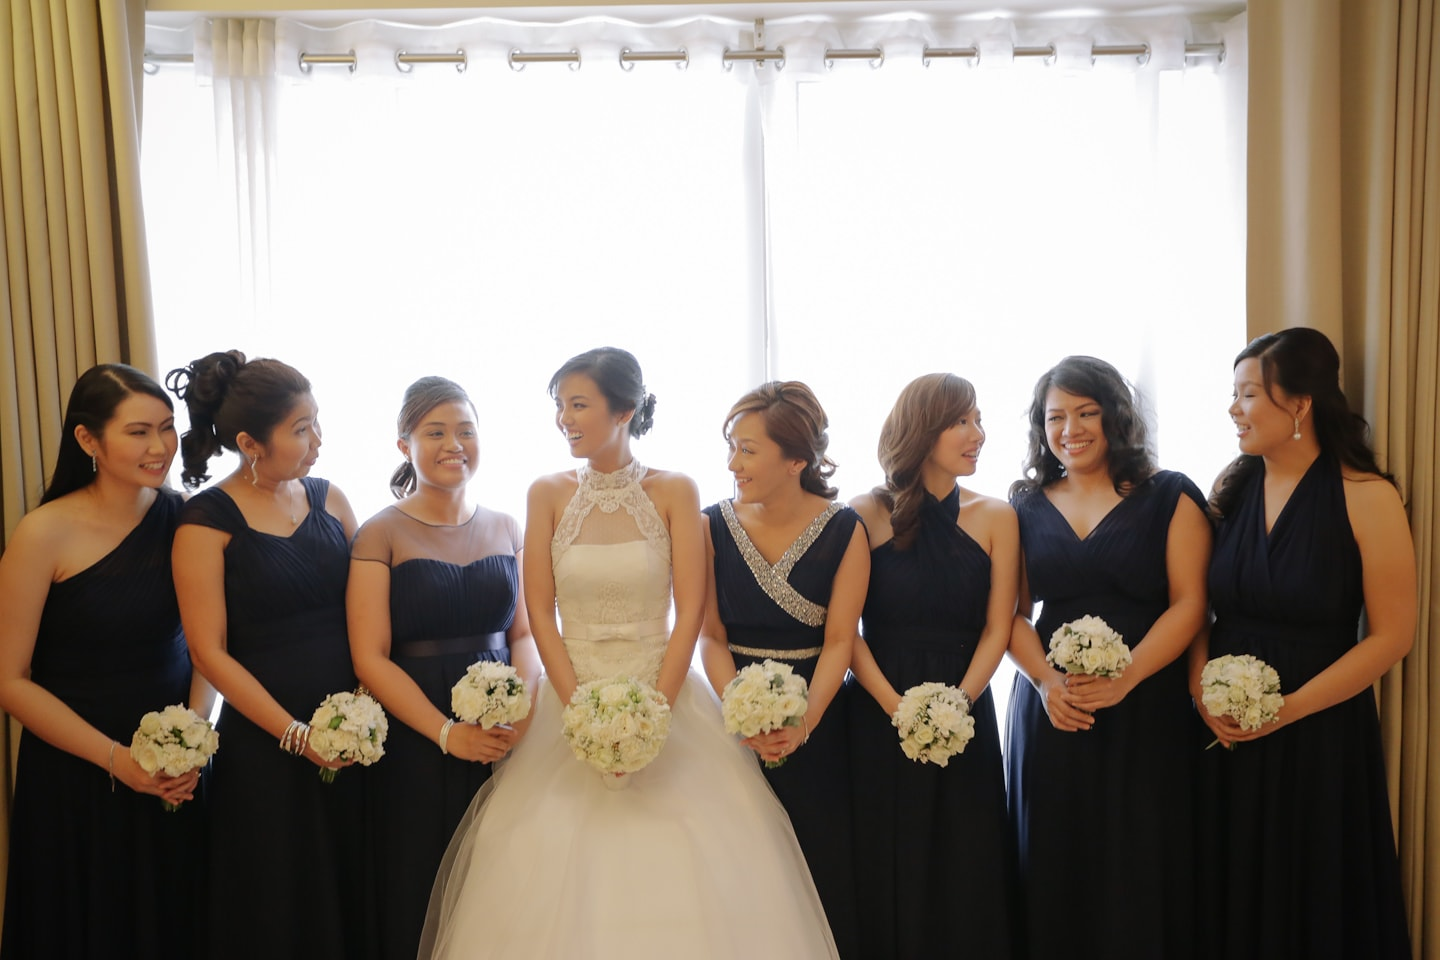 Katzi with her bridesmaids and maid of honor